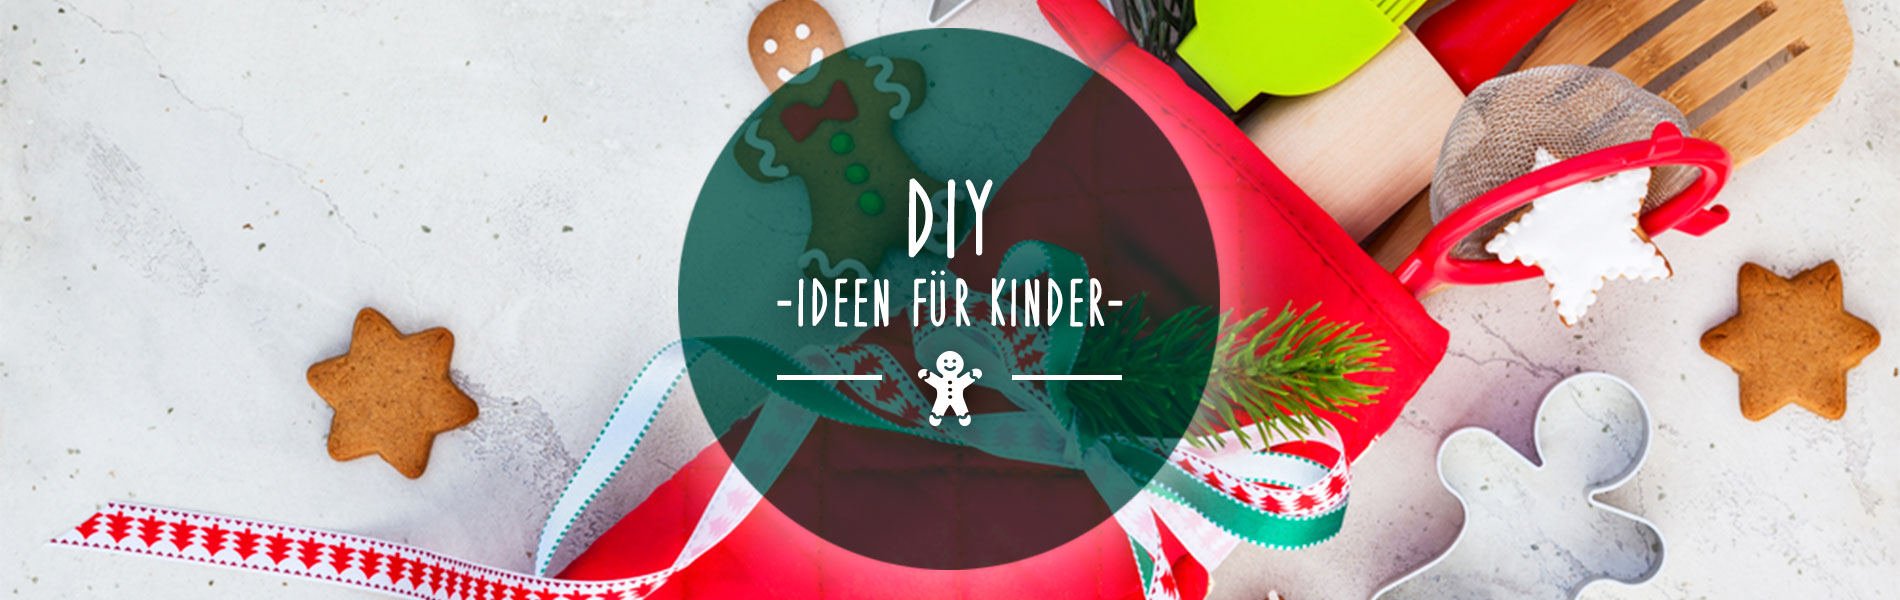 Christmas-Kids_3-Top-banner_DE